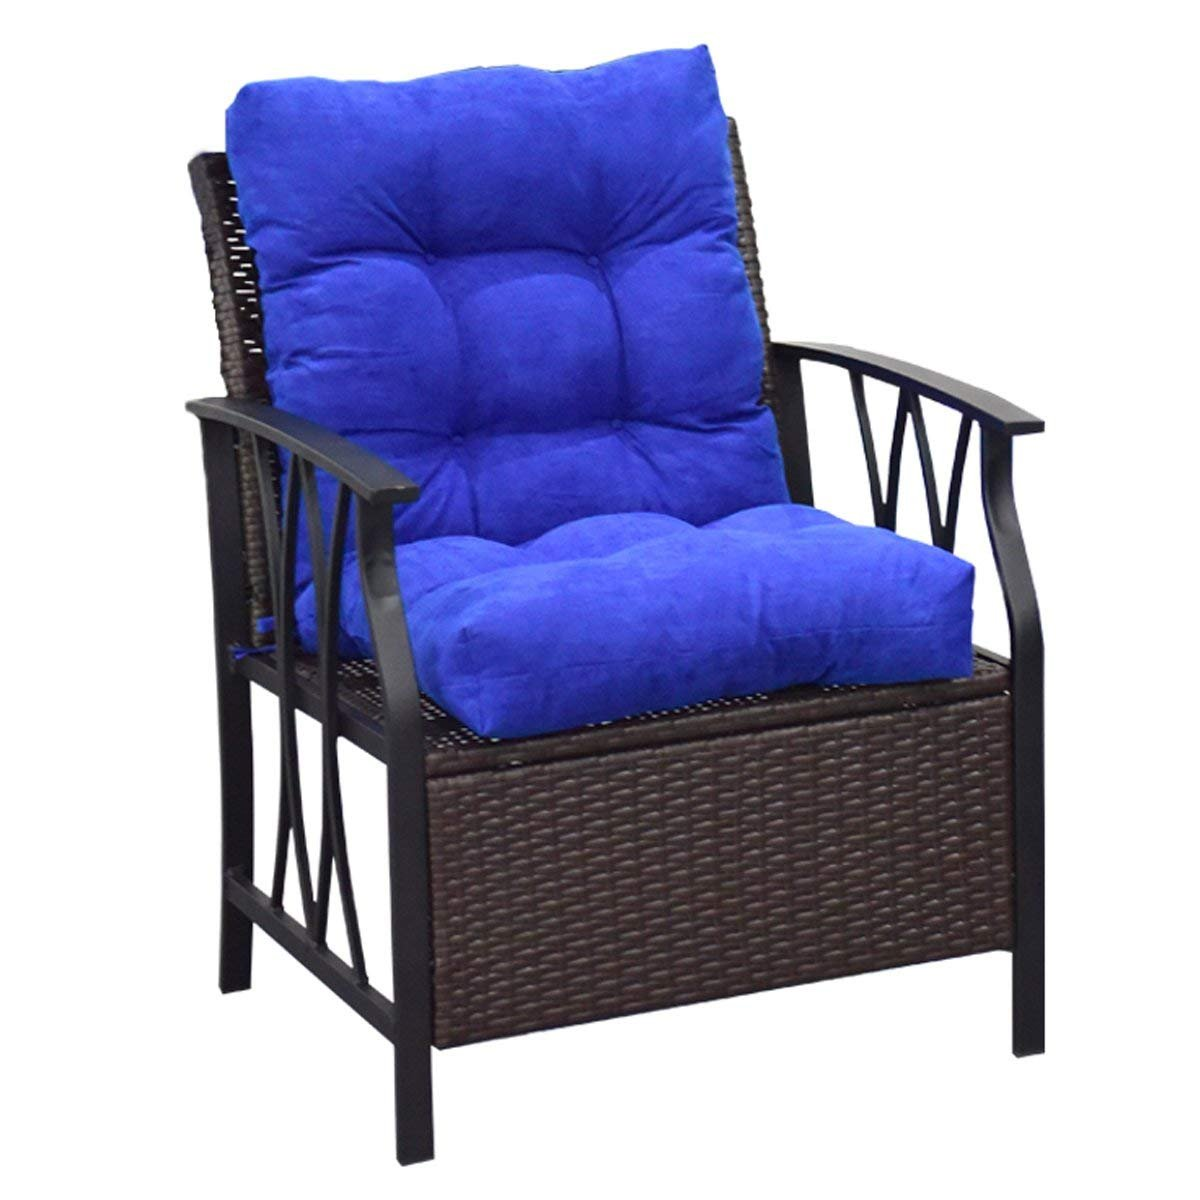 Giantex Patio High Back Chair Cushion Tufted Pillow Indoor Outdoor Spring/Summer Seasonal Swing Glider Seat Replacement Cushions (42'' Blue)